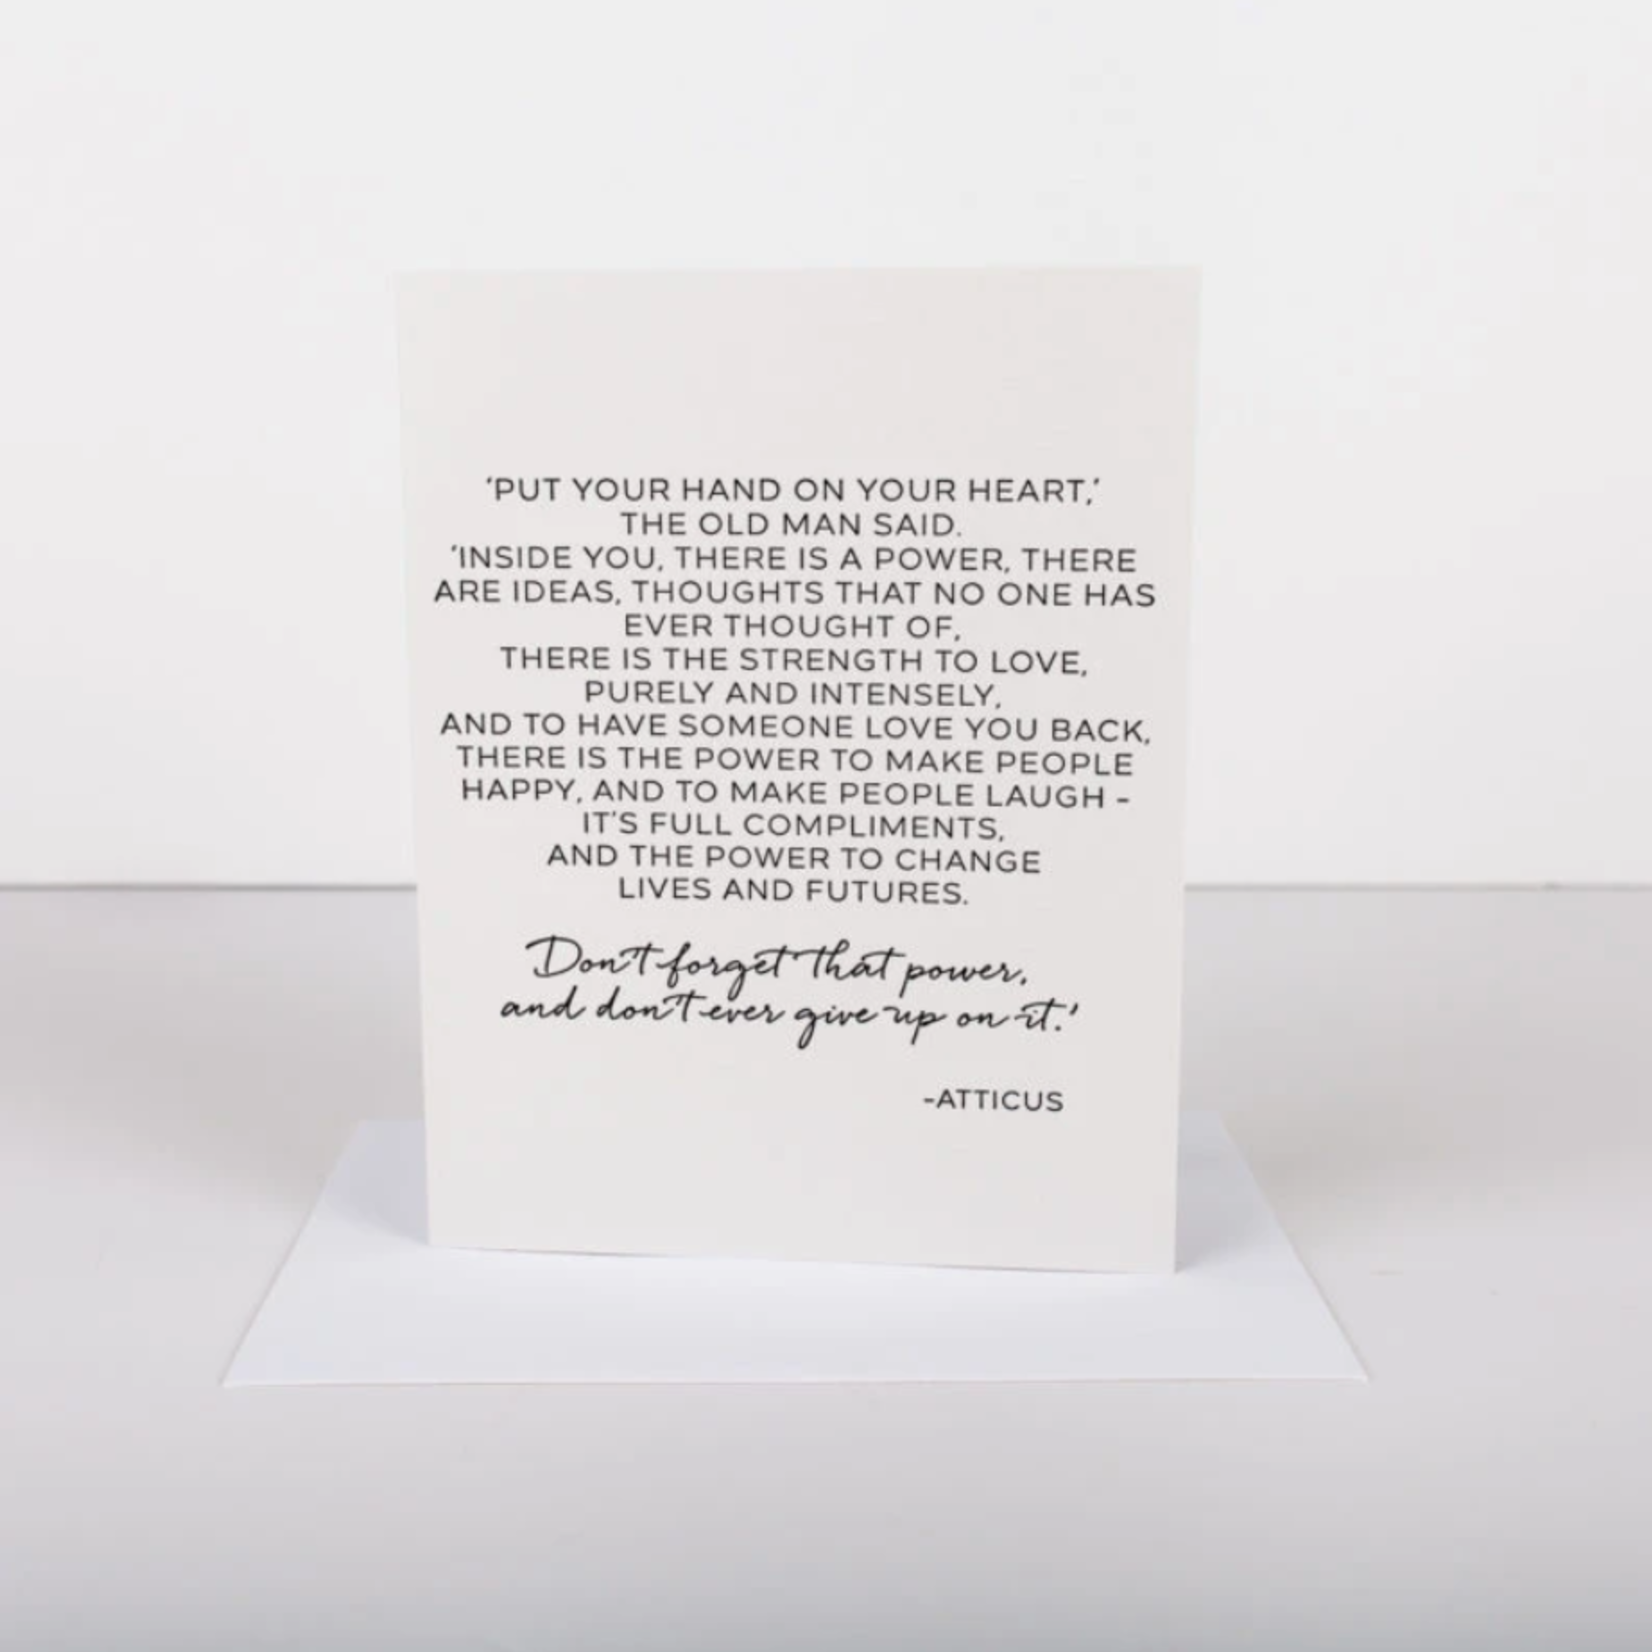 Wrinkle and Crease Atticus Card